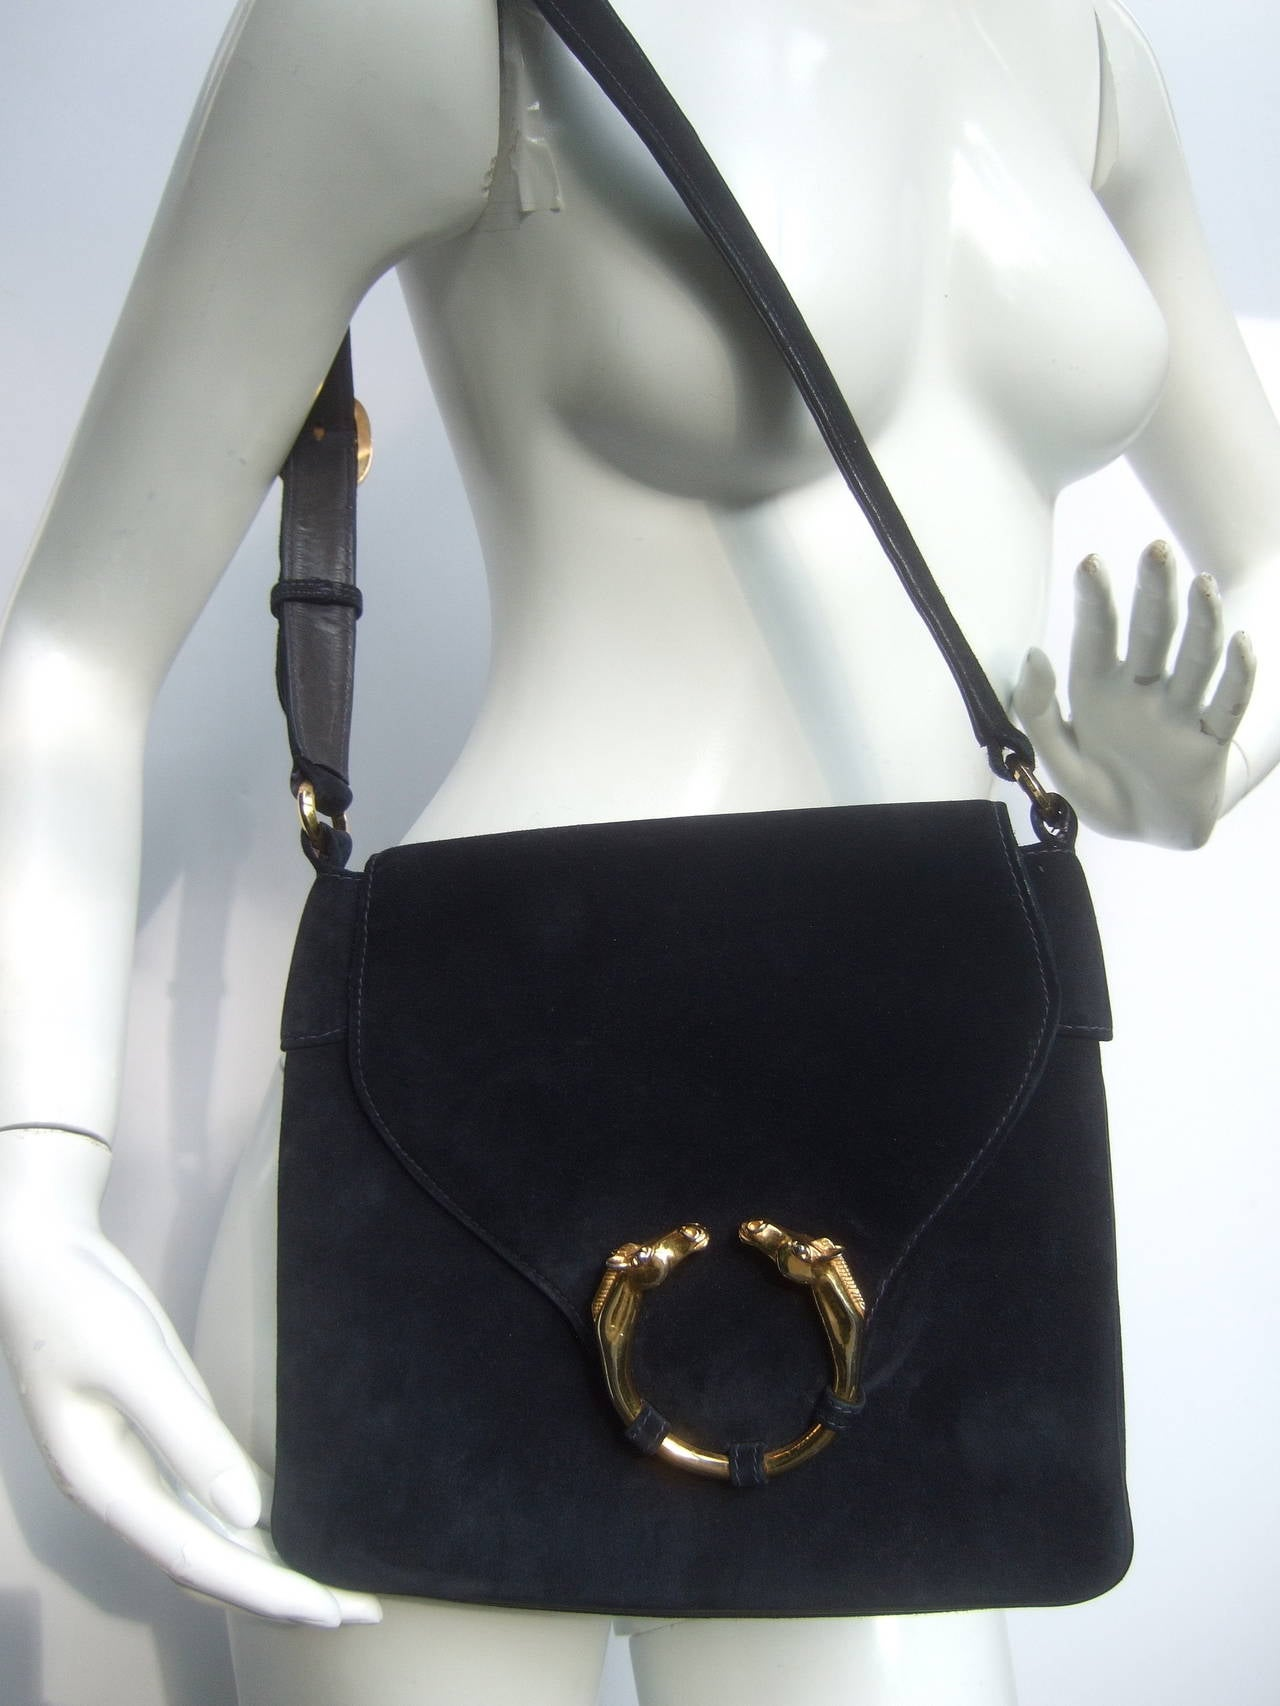 Gucci Rare equine emblem midnight blue shoulder bag c 1970